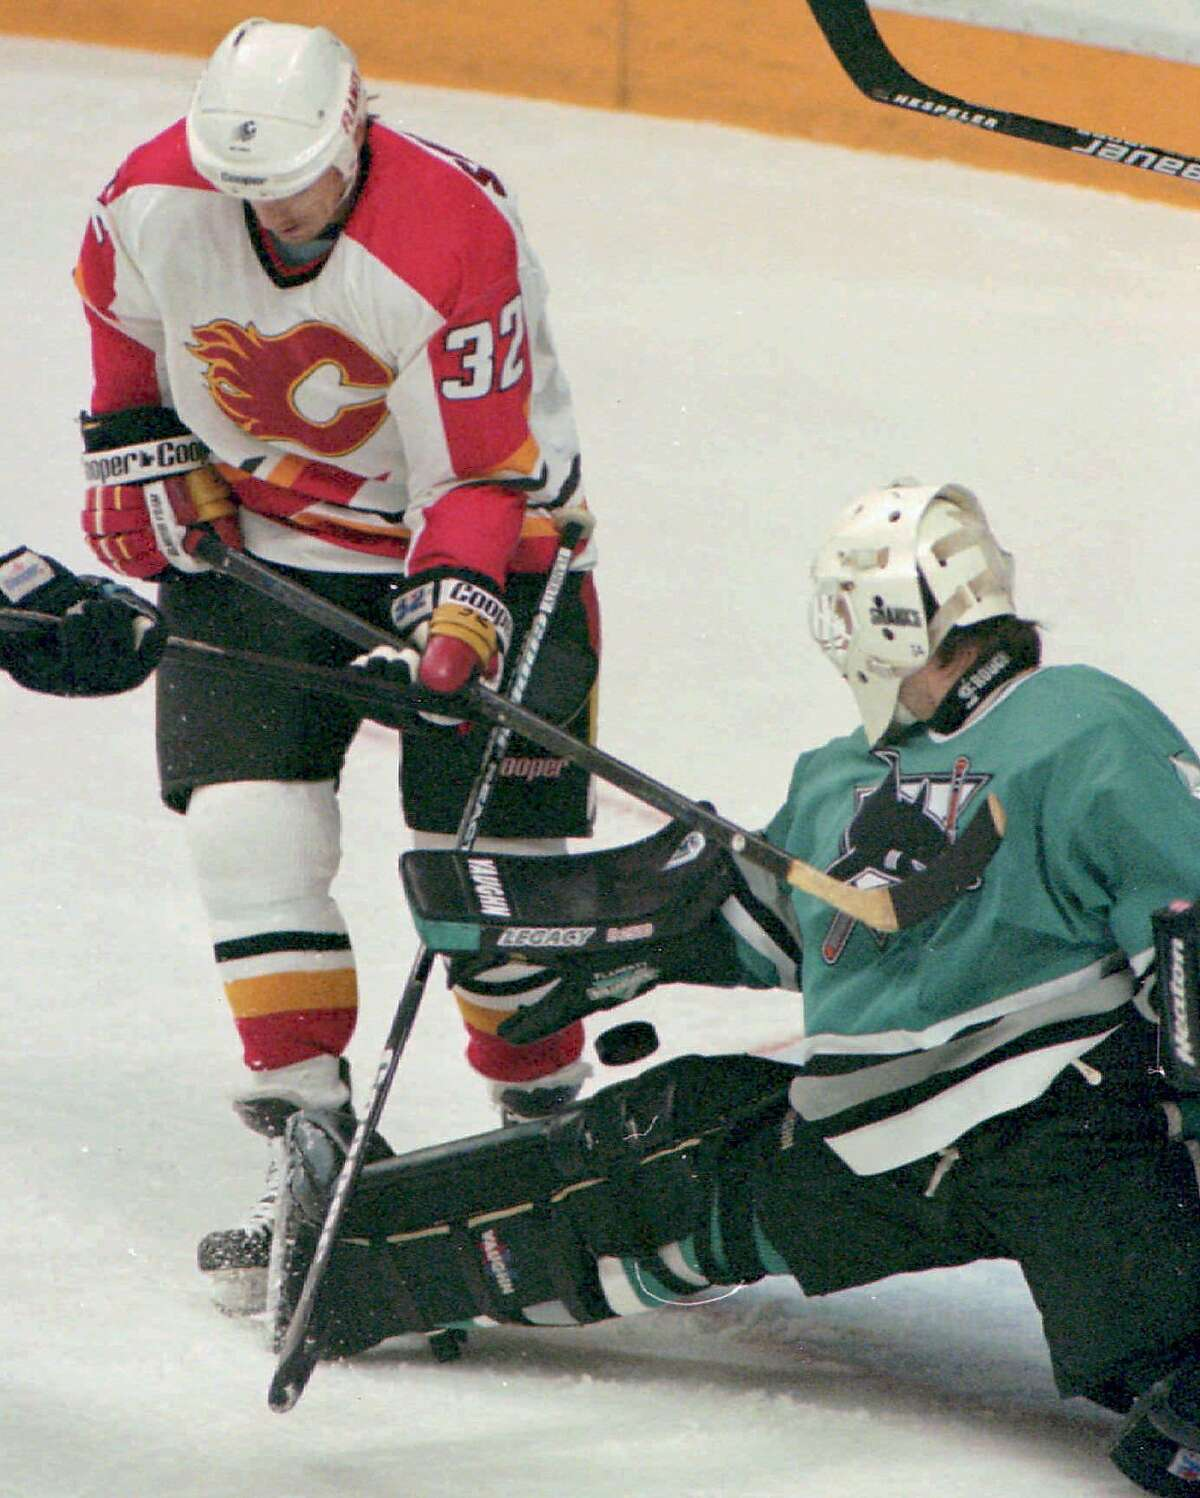 Calgary Flames winger Mike Sullivan presses San Jose Sharks goalie Wade Flaherty, right, as Flaherty makes the save during the first period of their playoff game in Calgary, Friday night, May 19, 1995. (AP Photo/Canadian Press, Dave Buston)